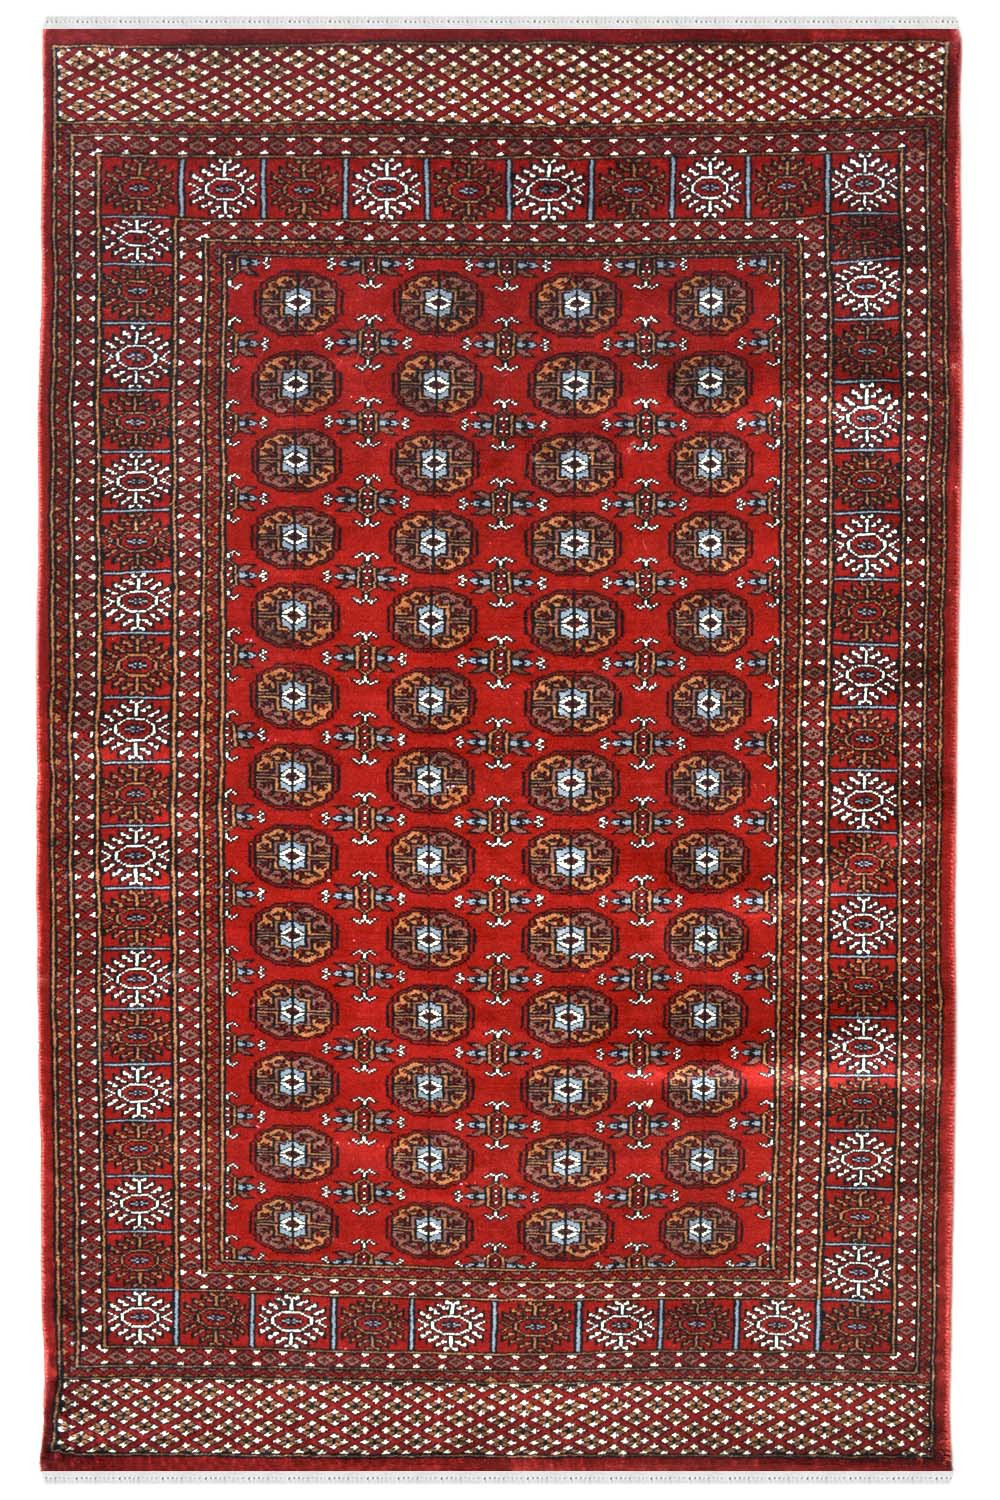 4 X 6 Indian Bukhara Rug Afghan Rugs And Carpet At Rugs